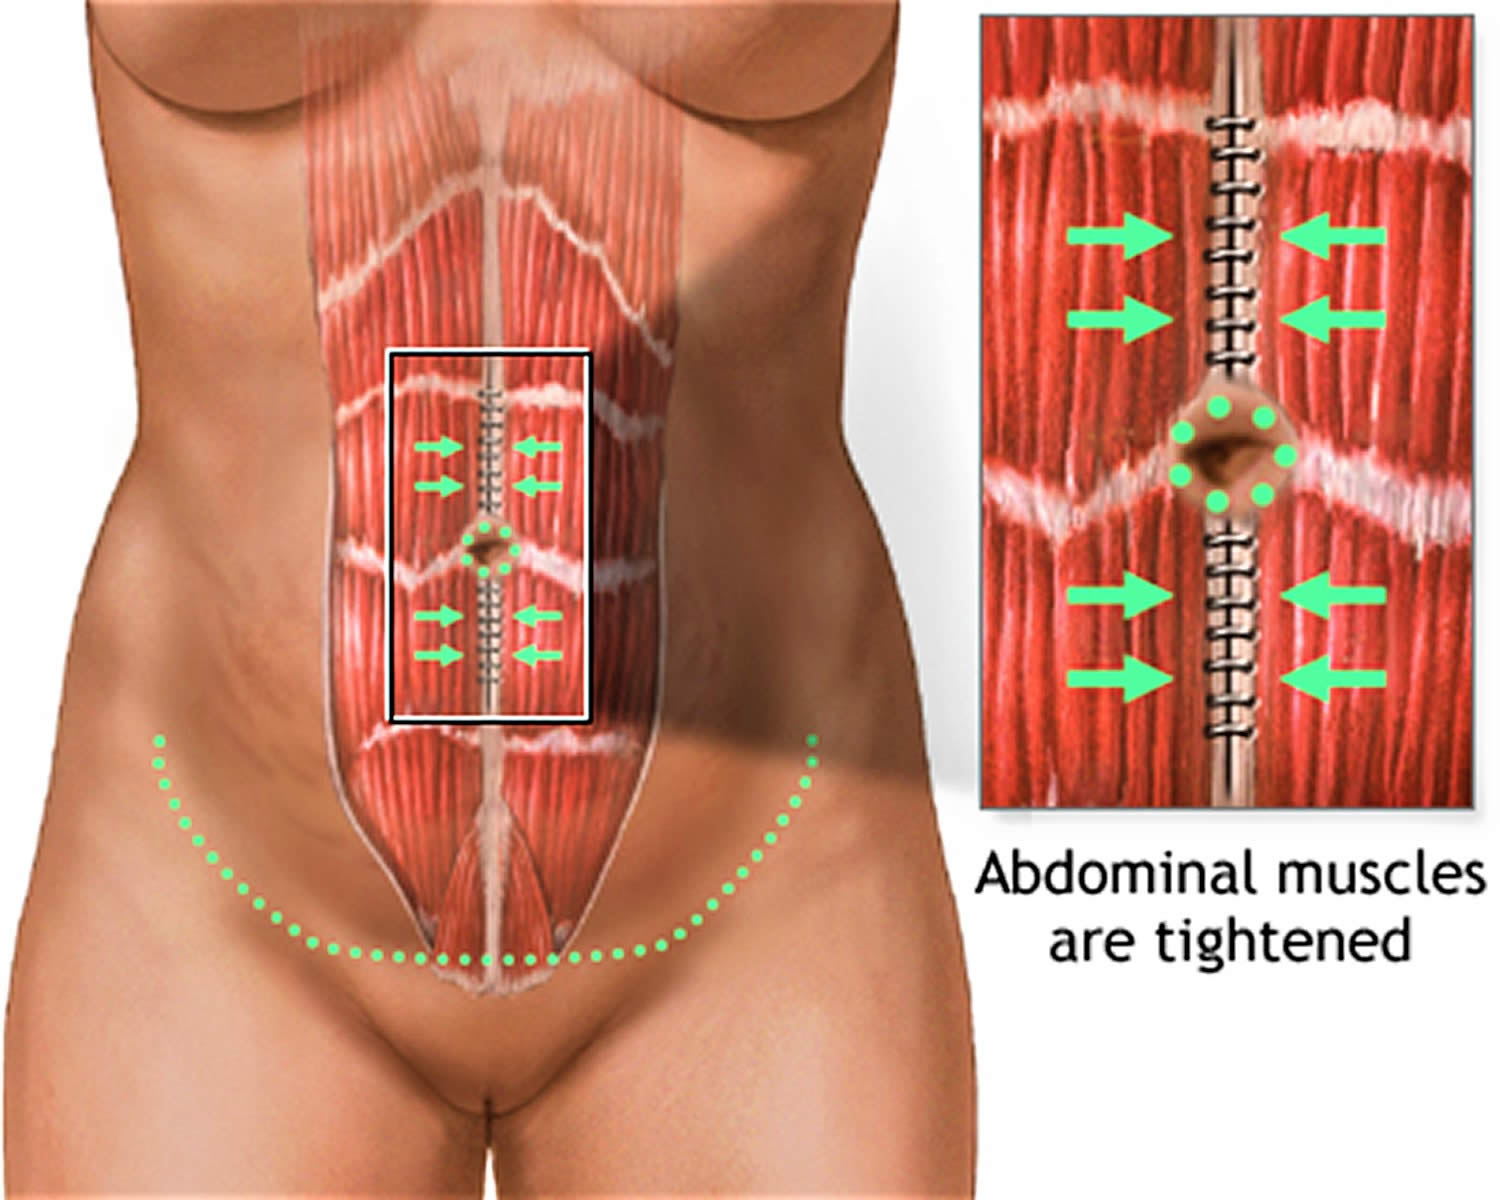 abdominoplasty surgery